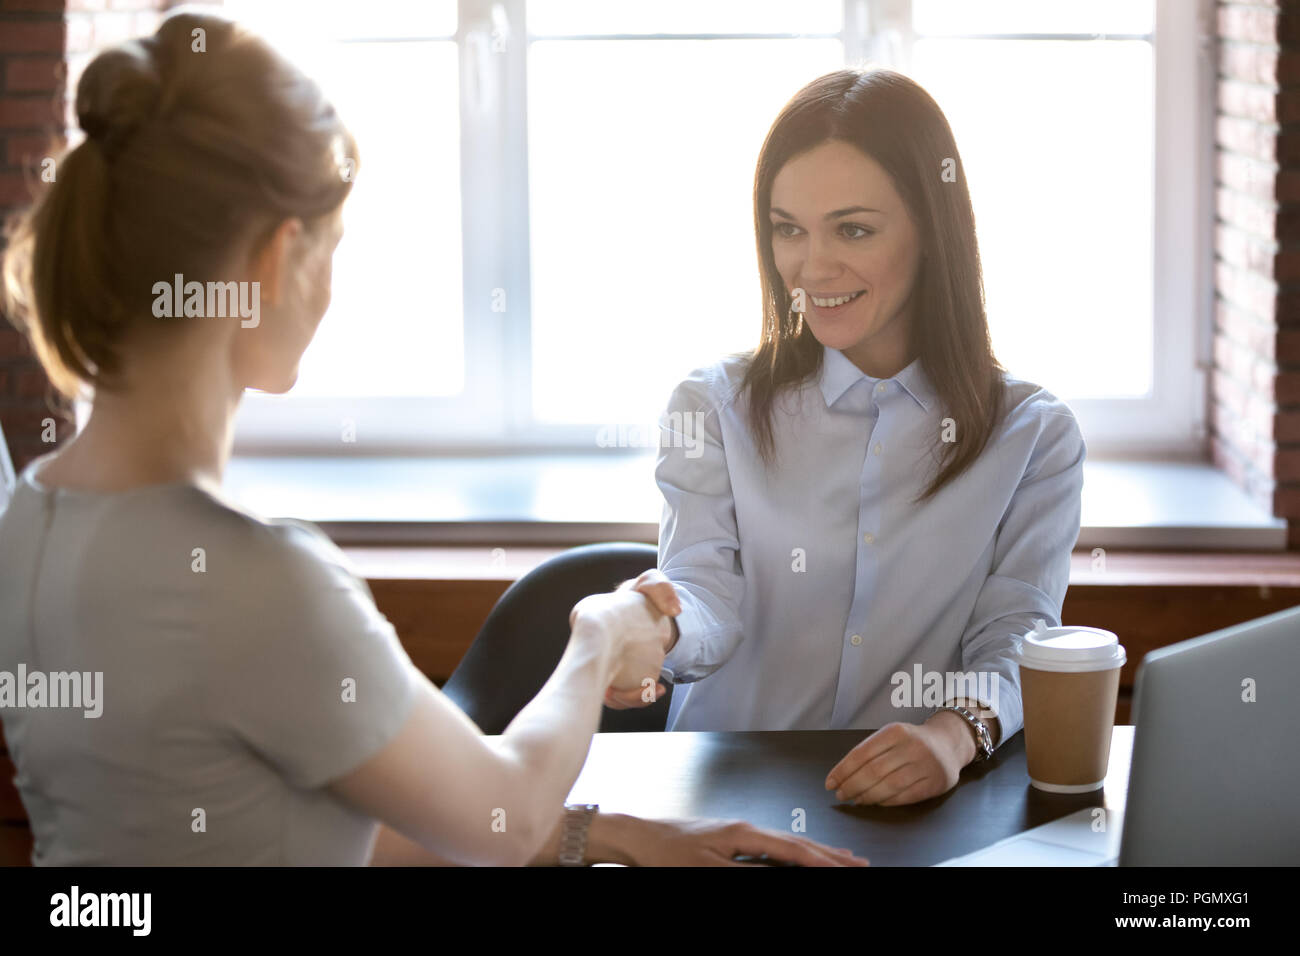 Female businesswomen shaking hands in office - Stock Image